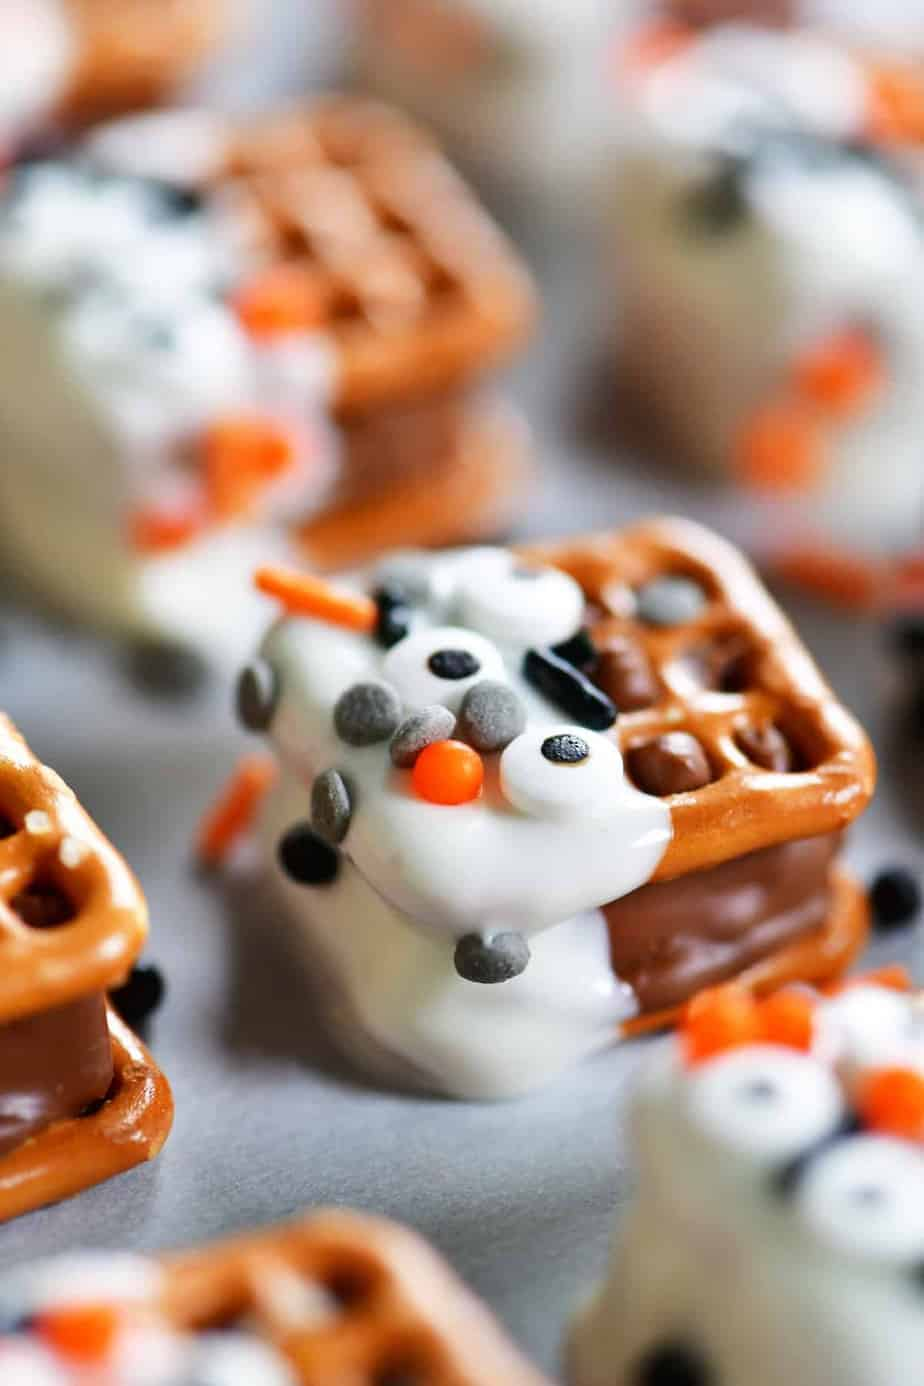 Square pretzels with a candy bar melted in between and dipped in chocolate and decorated with halloween sprinkes